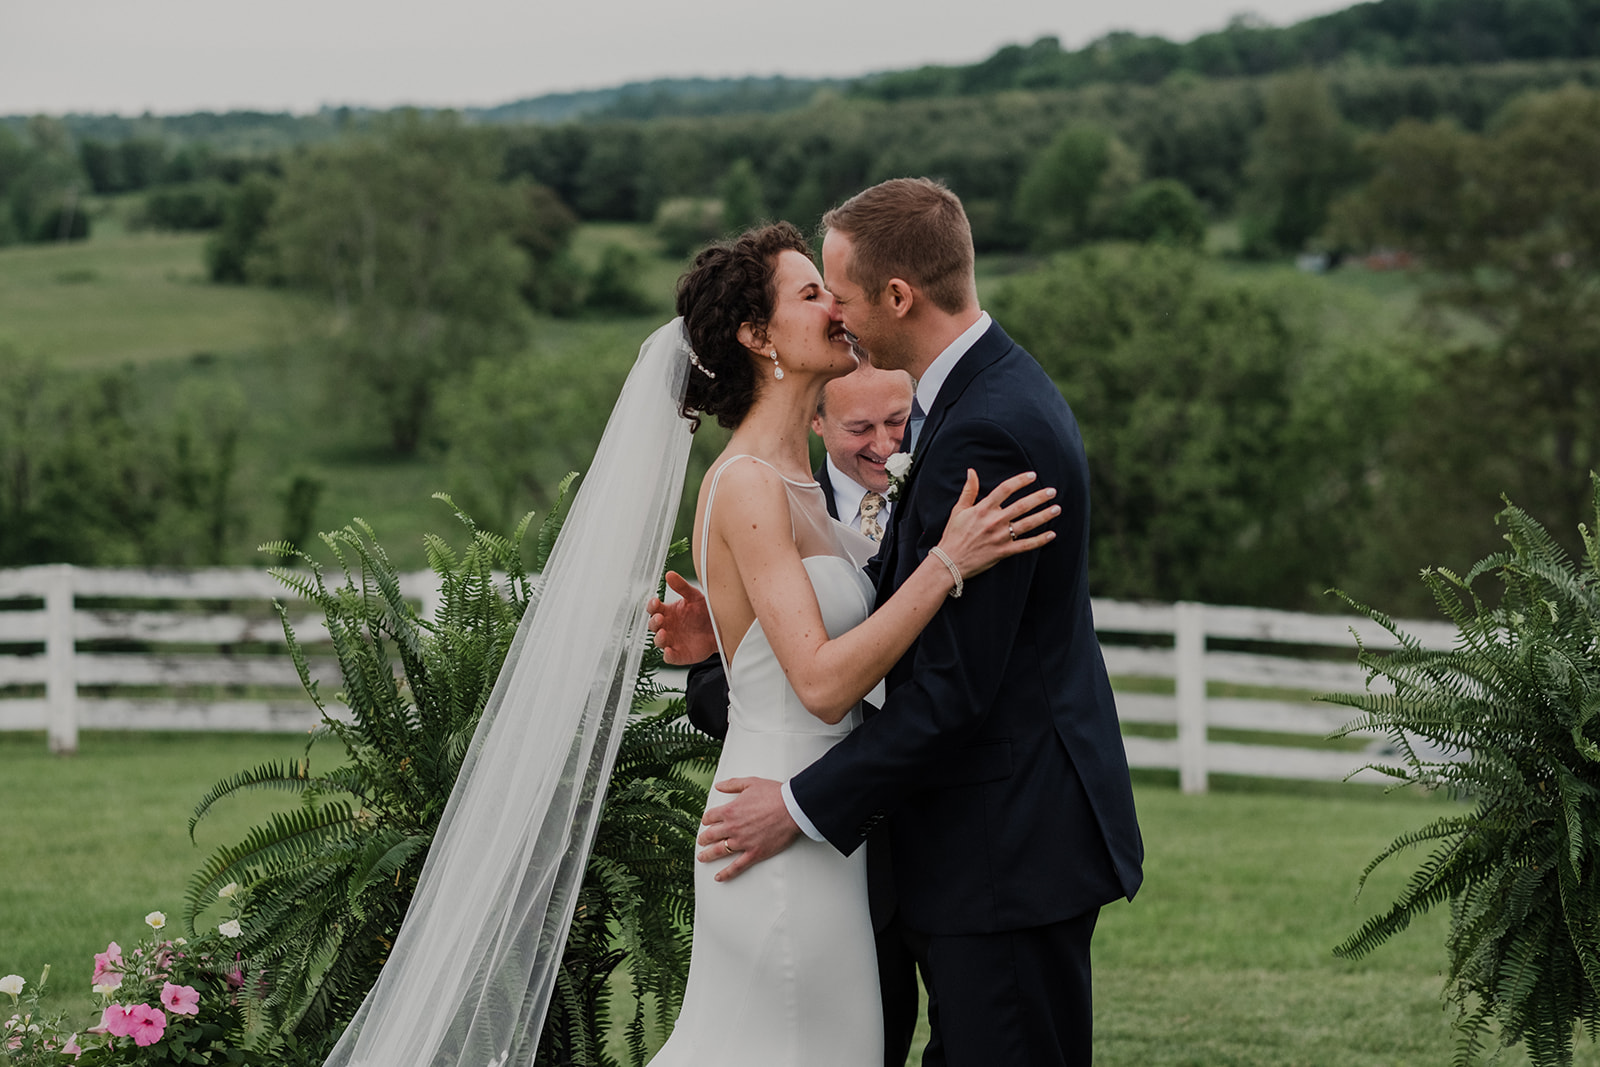 A bride and groom kiss after they are pronounced husband and wife during their outdoor wedding ceremony at Blue Hill Farm in Waterford, VA.